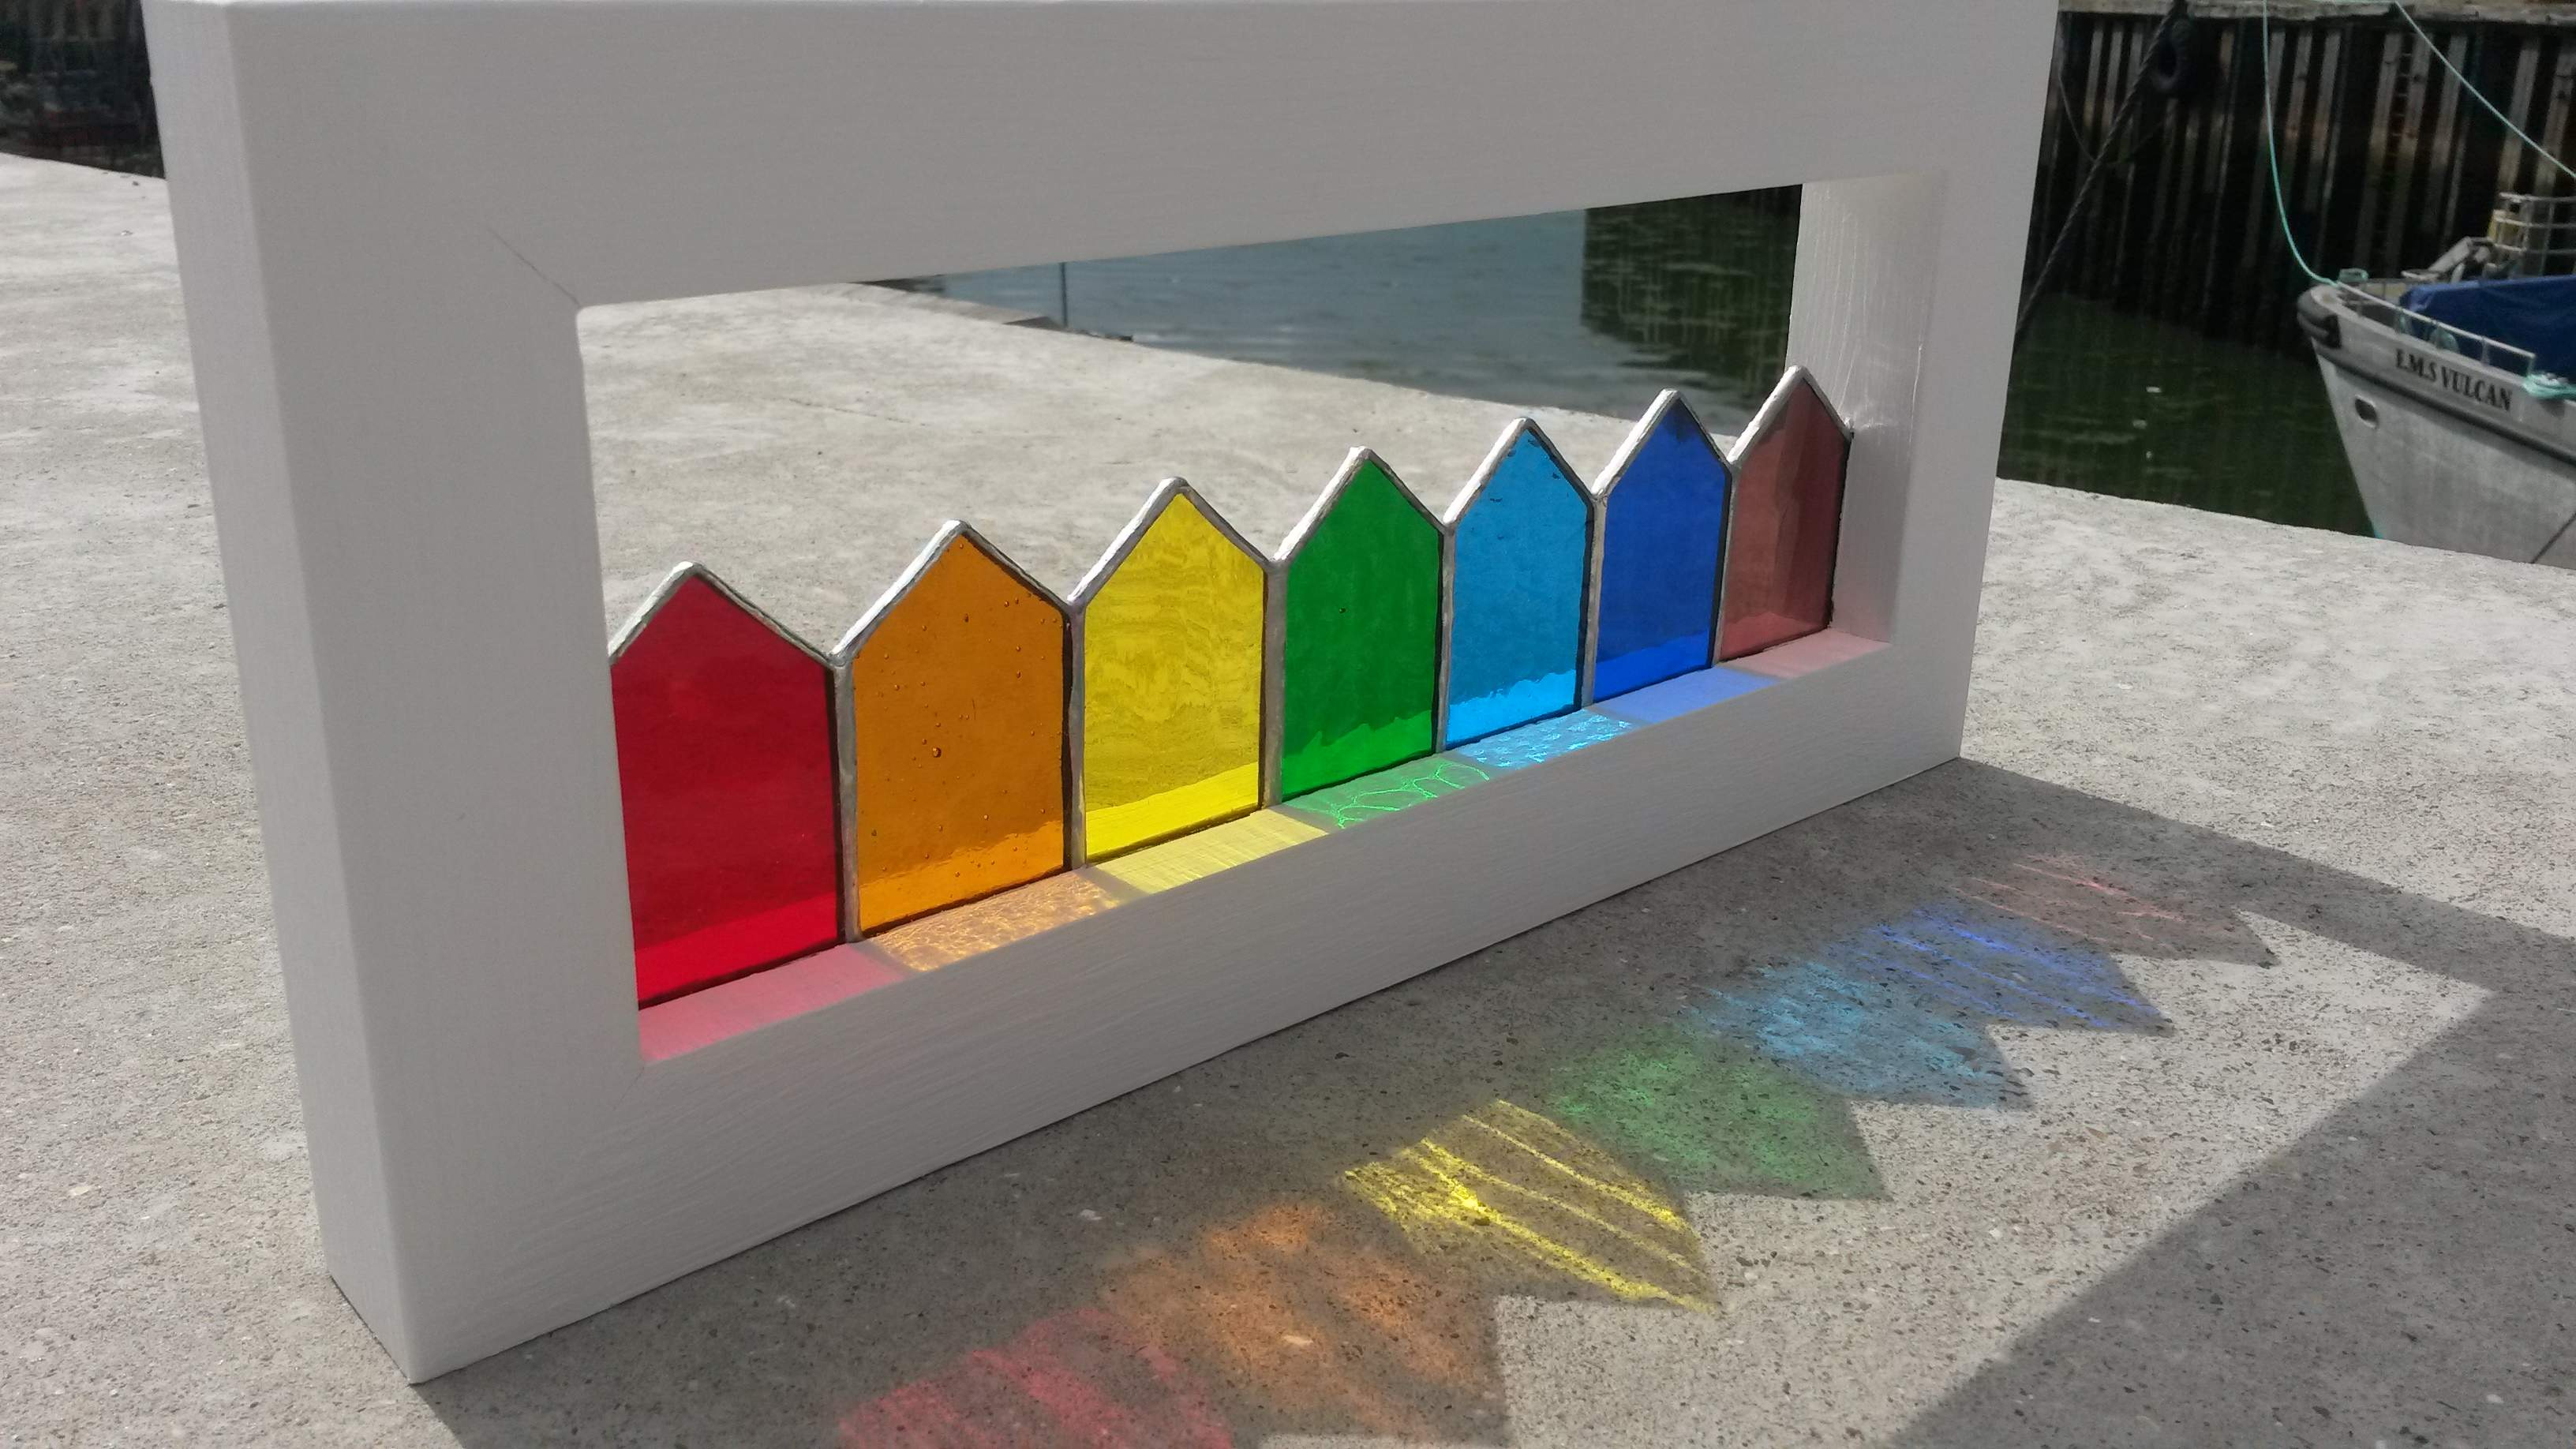 Rainbow beach huts in bespoke wooden frame